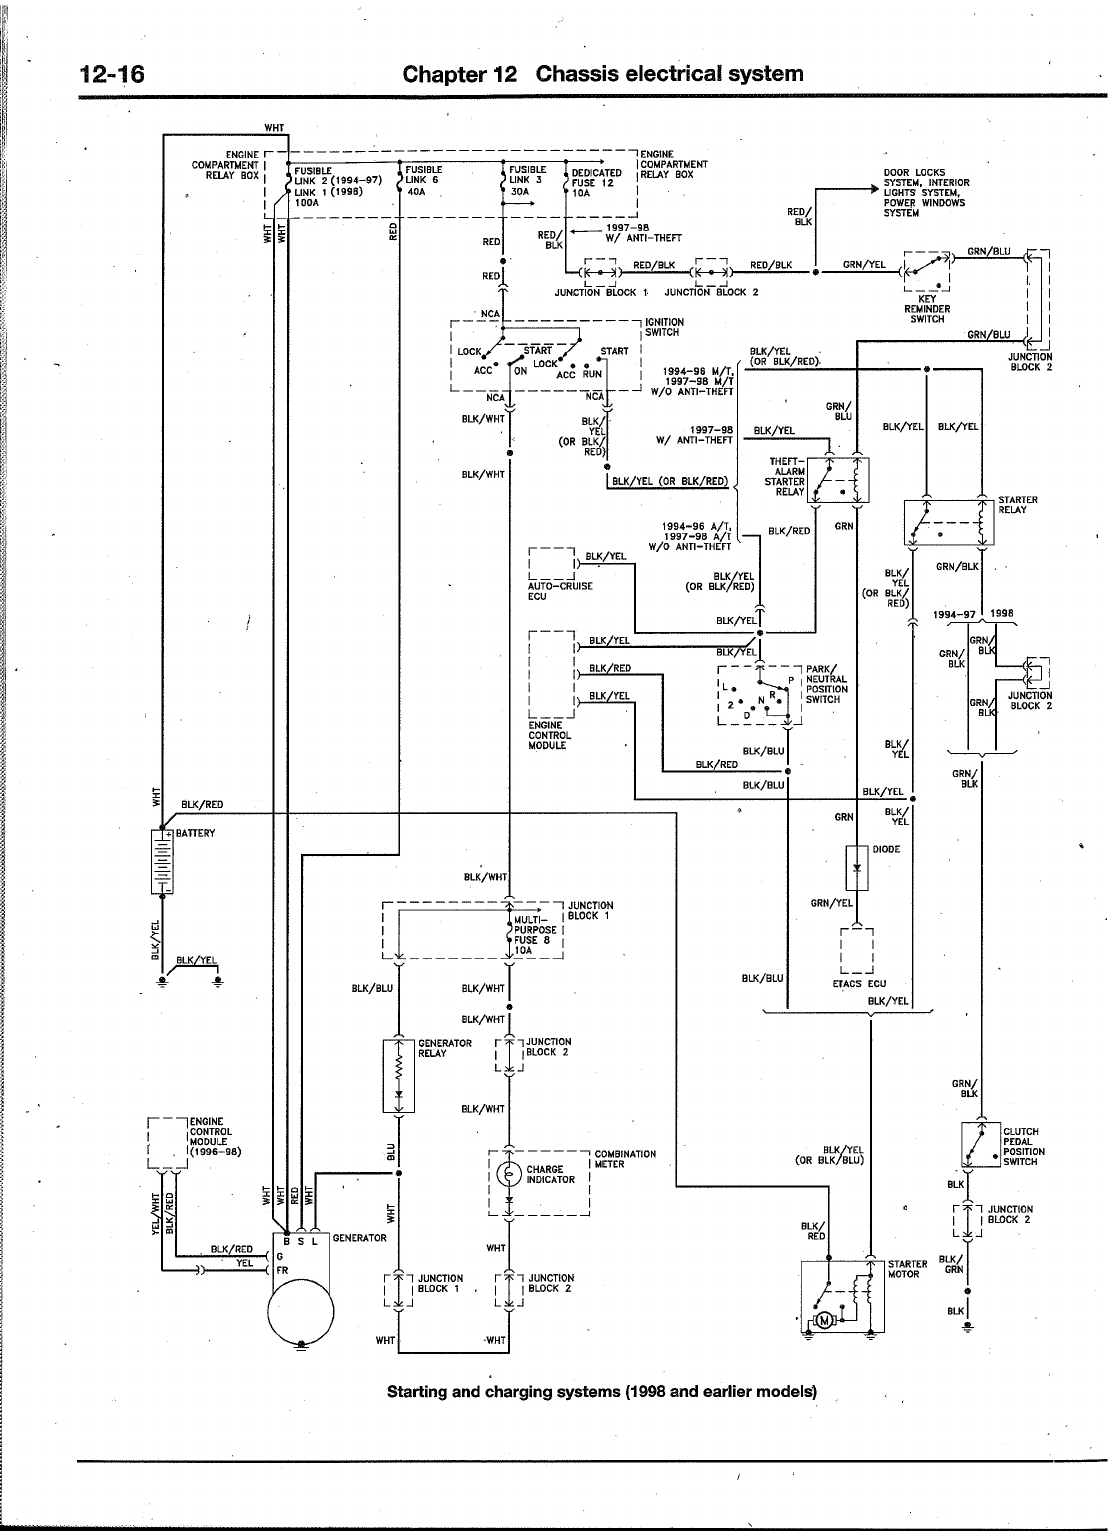 Mitsubishi Galant Wiring Diagram Diagrams Bmw Z4 Fuse 1994 2003 Misc Document Pdf